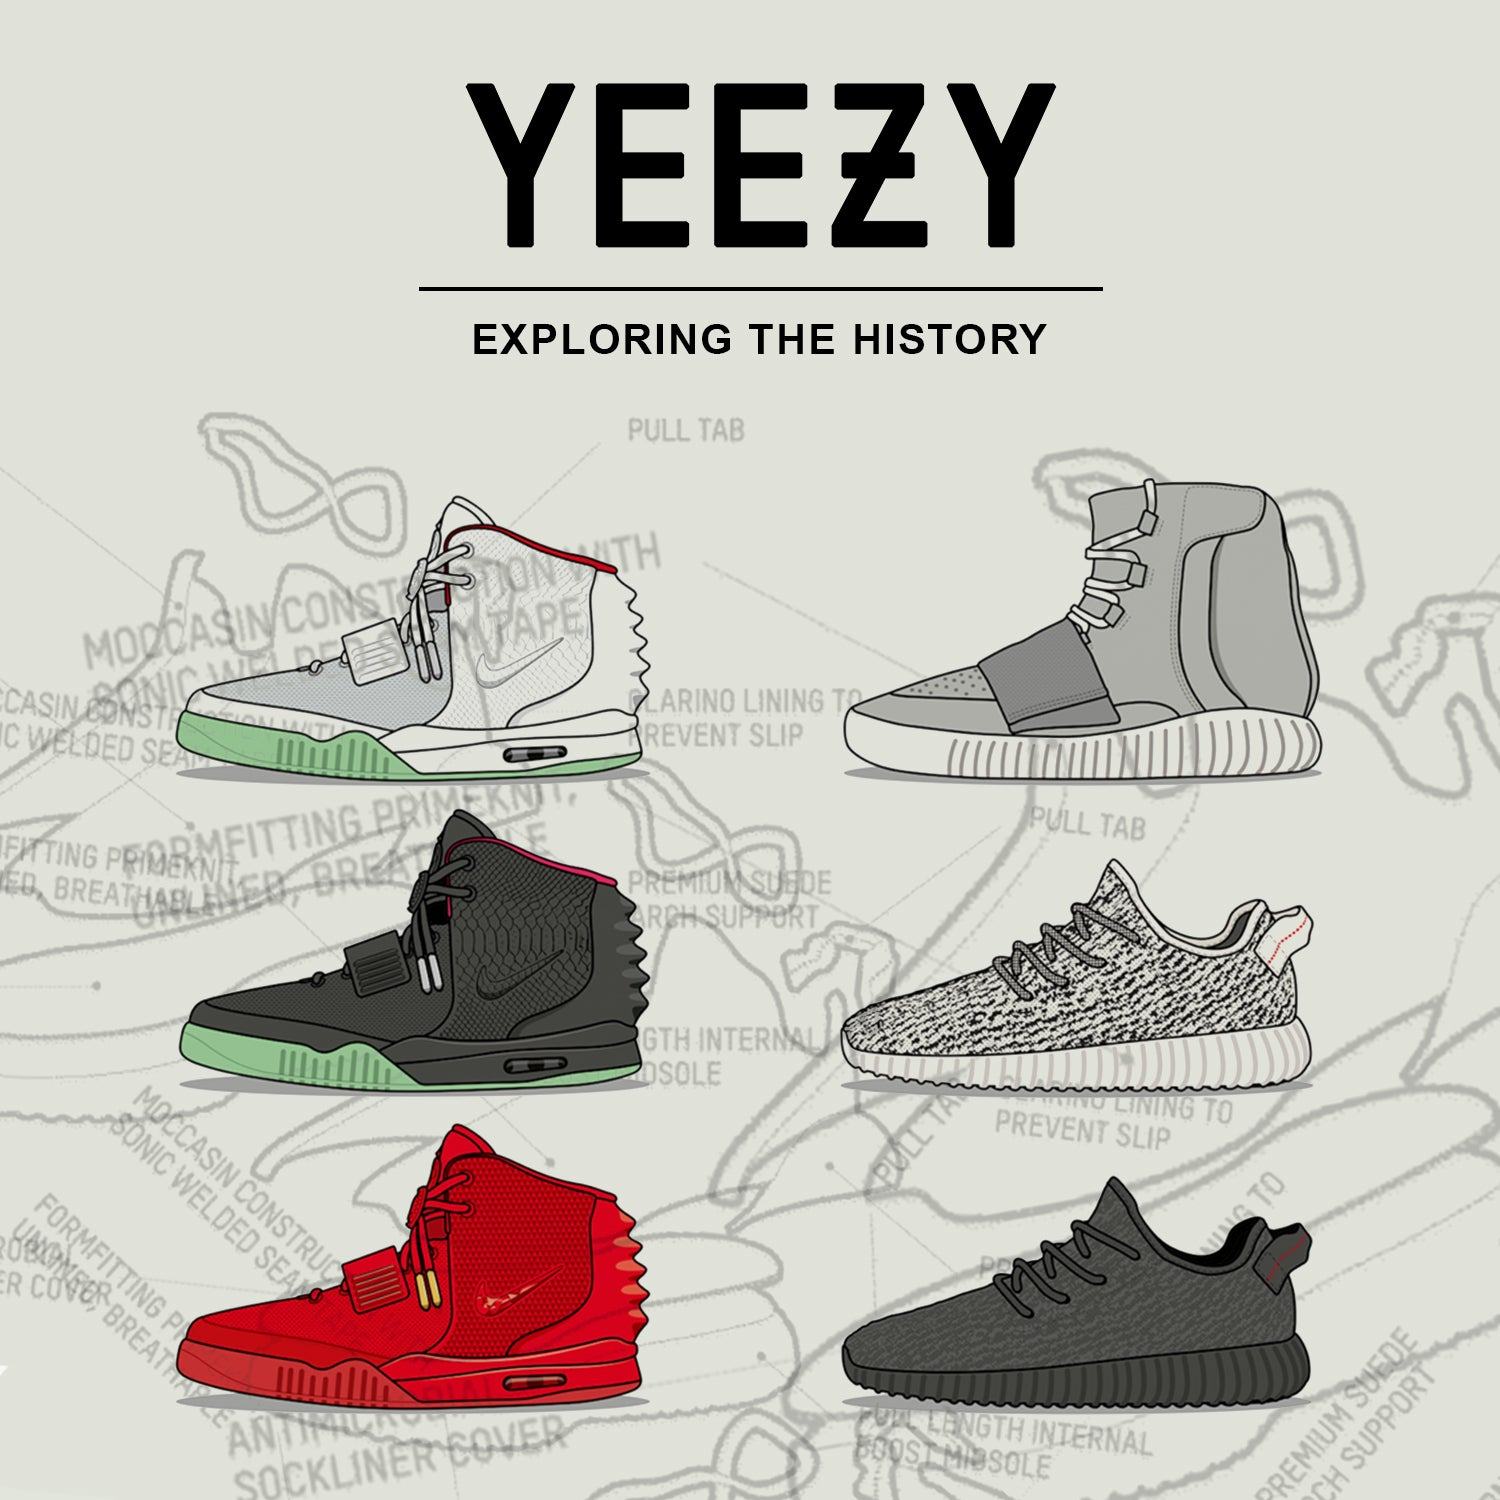 Yeezy: Exploring The History.